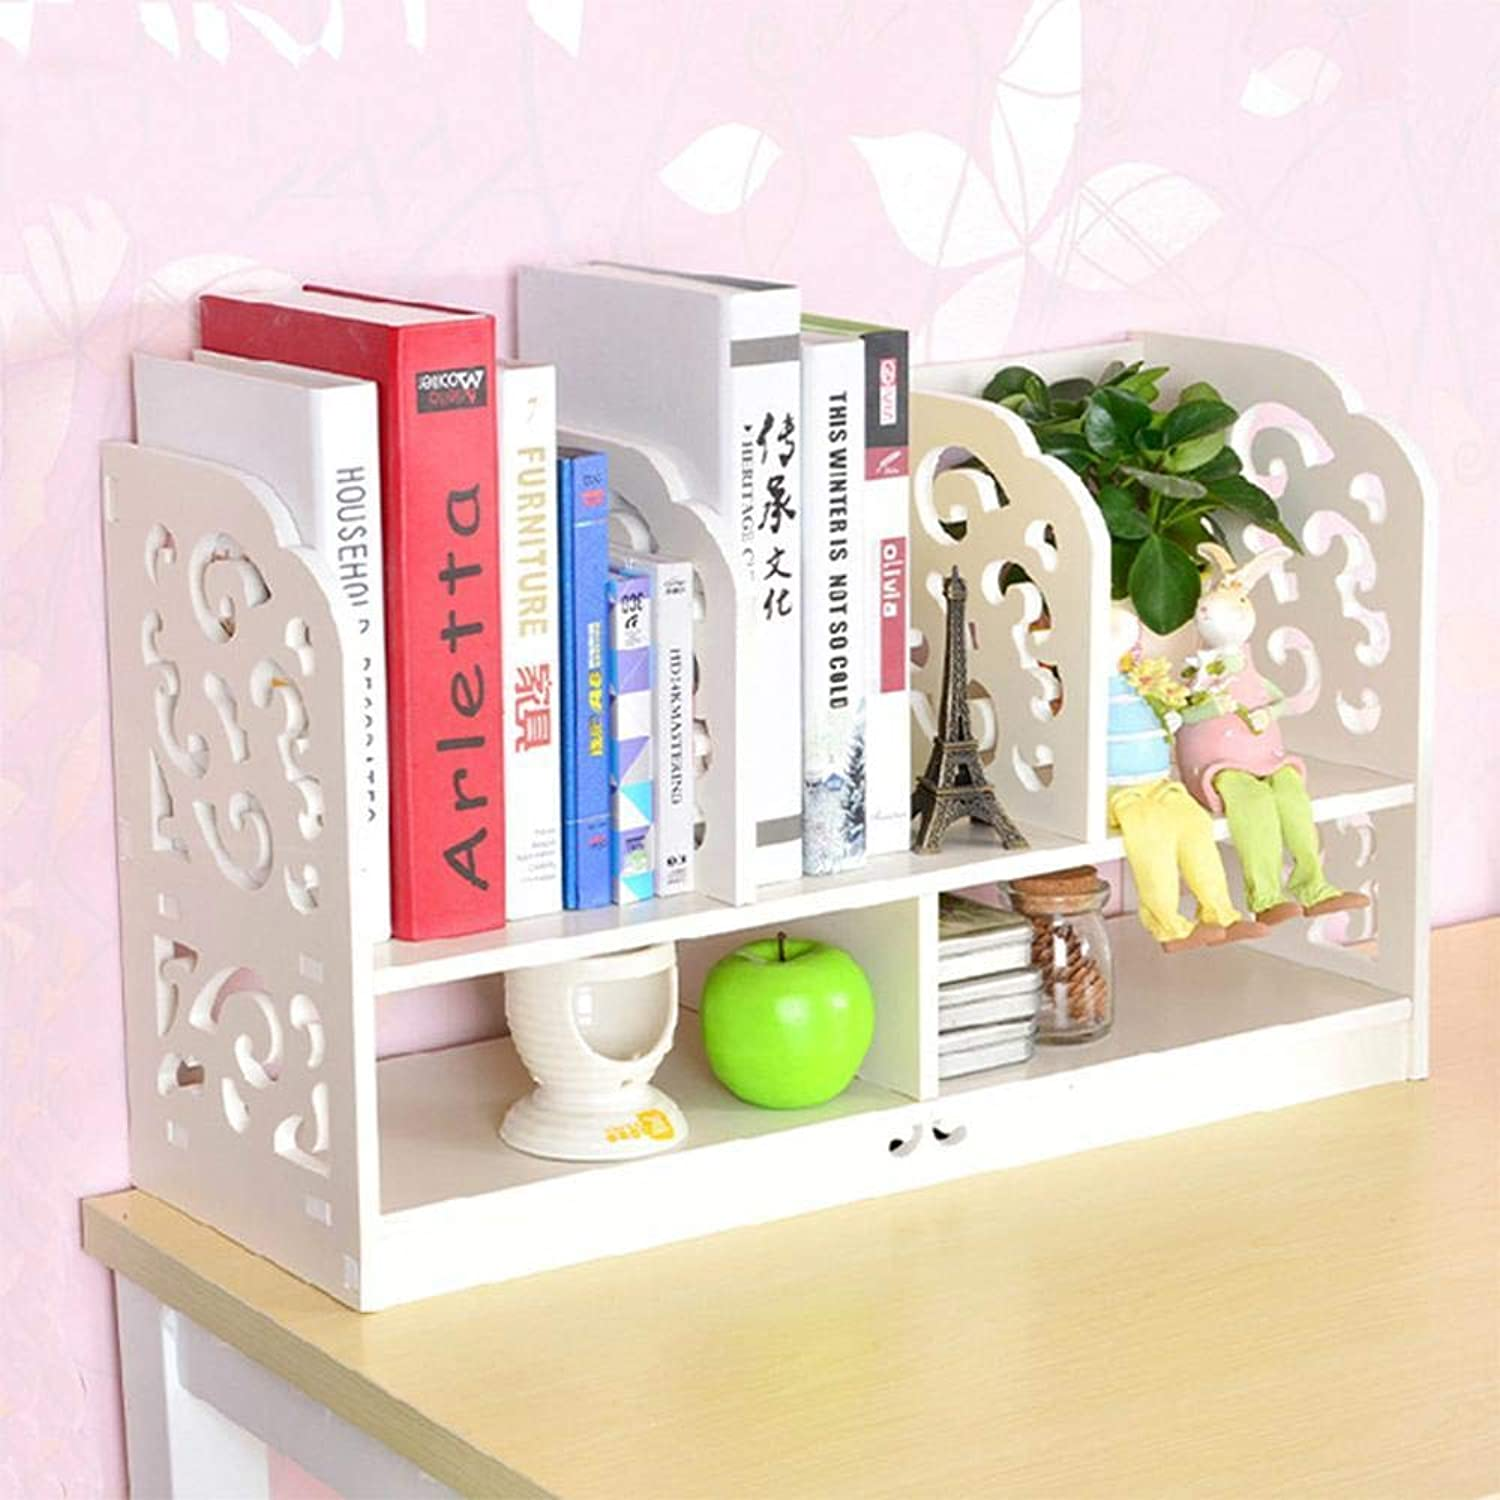 Yunfeng Bookshelf,Floor-Standing Multifunctional Rack Desk Surface Storage and Finishing Wood Plastic Board Multi-Layer Shelf